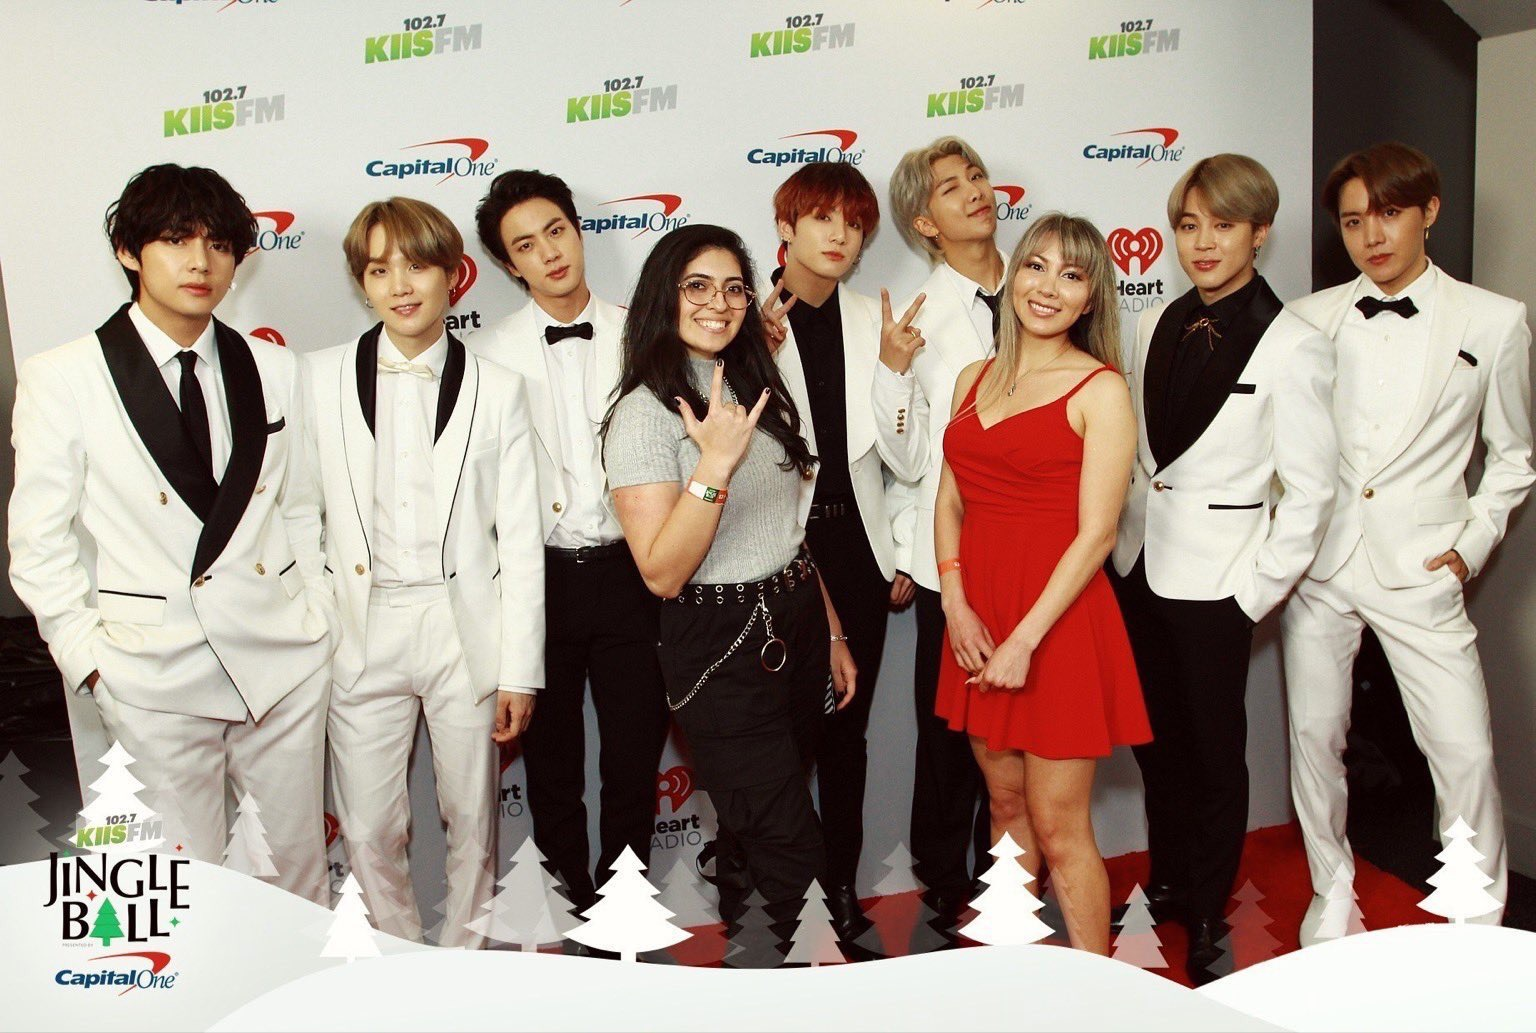 Awesome Meet Bts Family 2020 wallpapers to download for free greenvirals